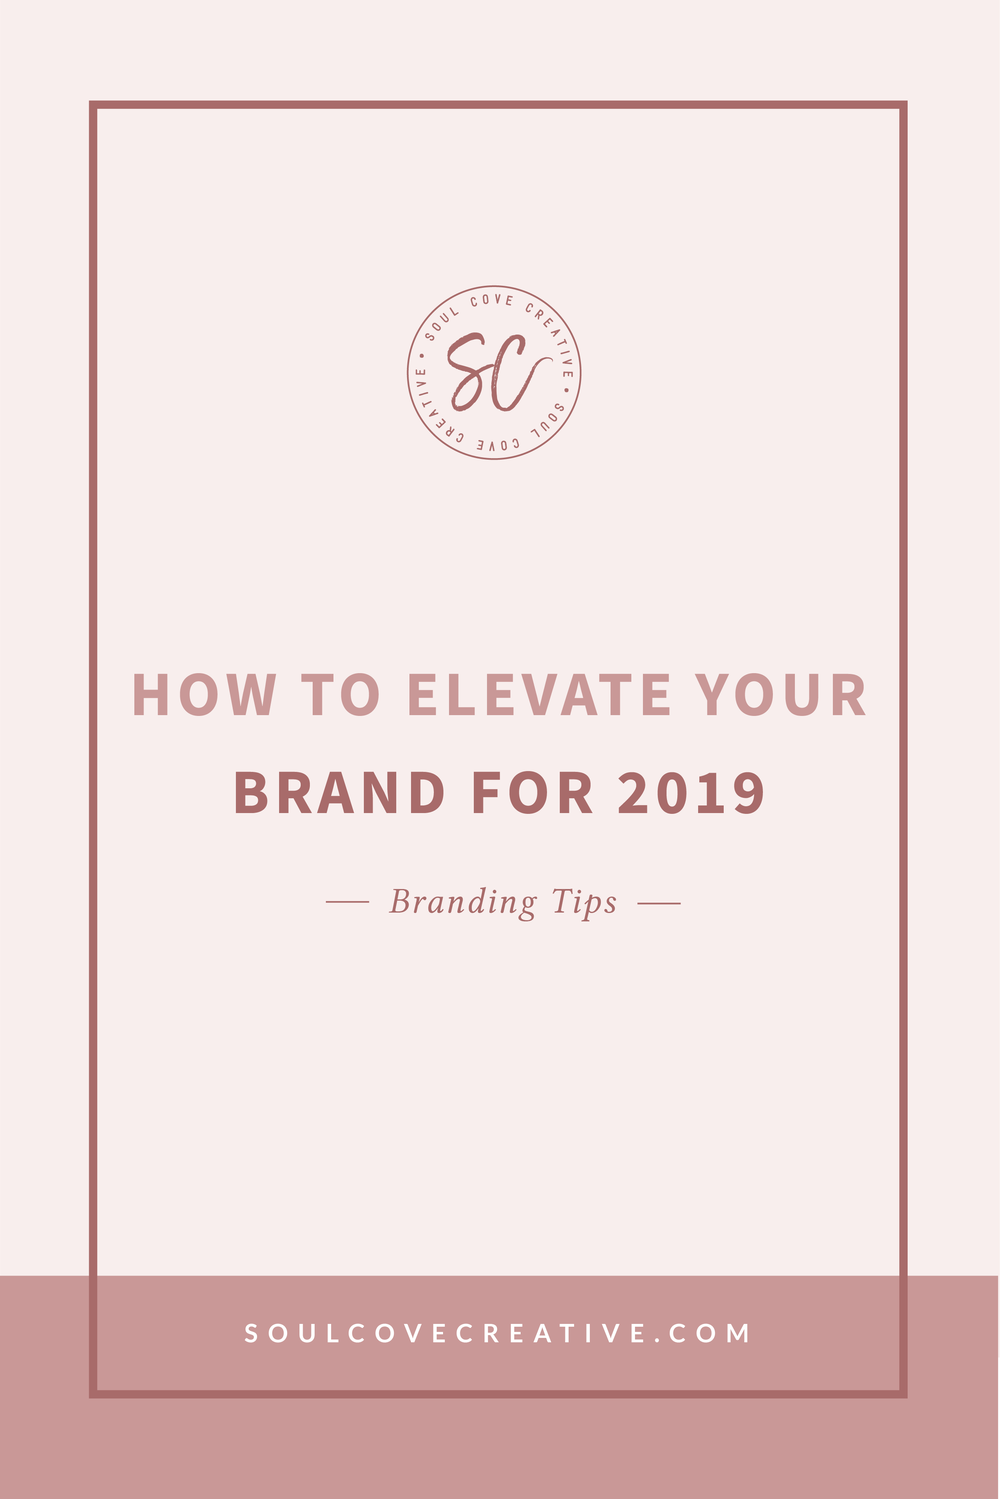 How to Elevate your Brand for 2019